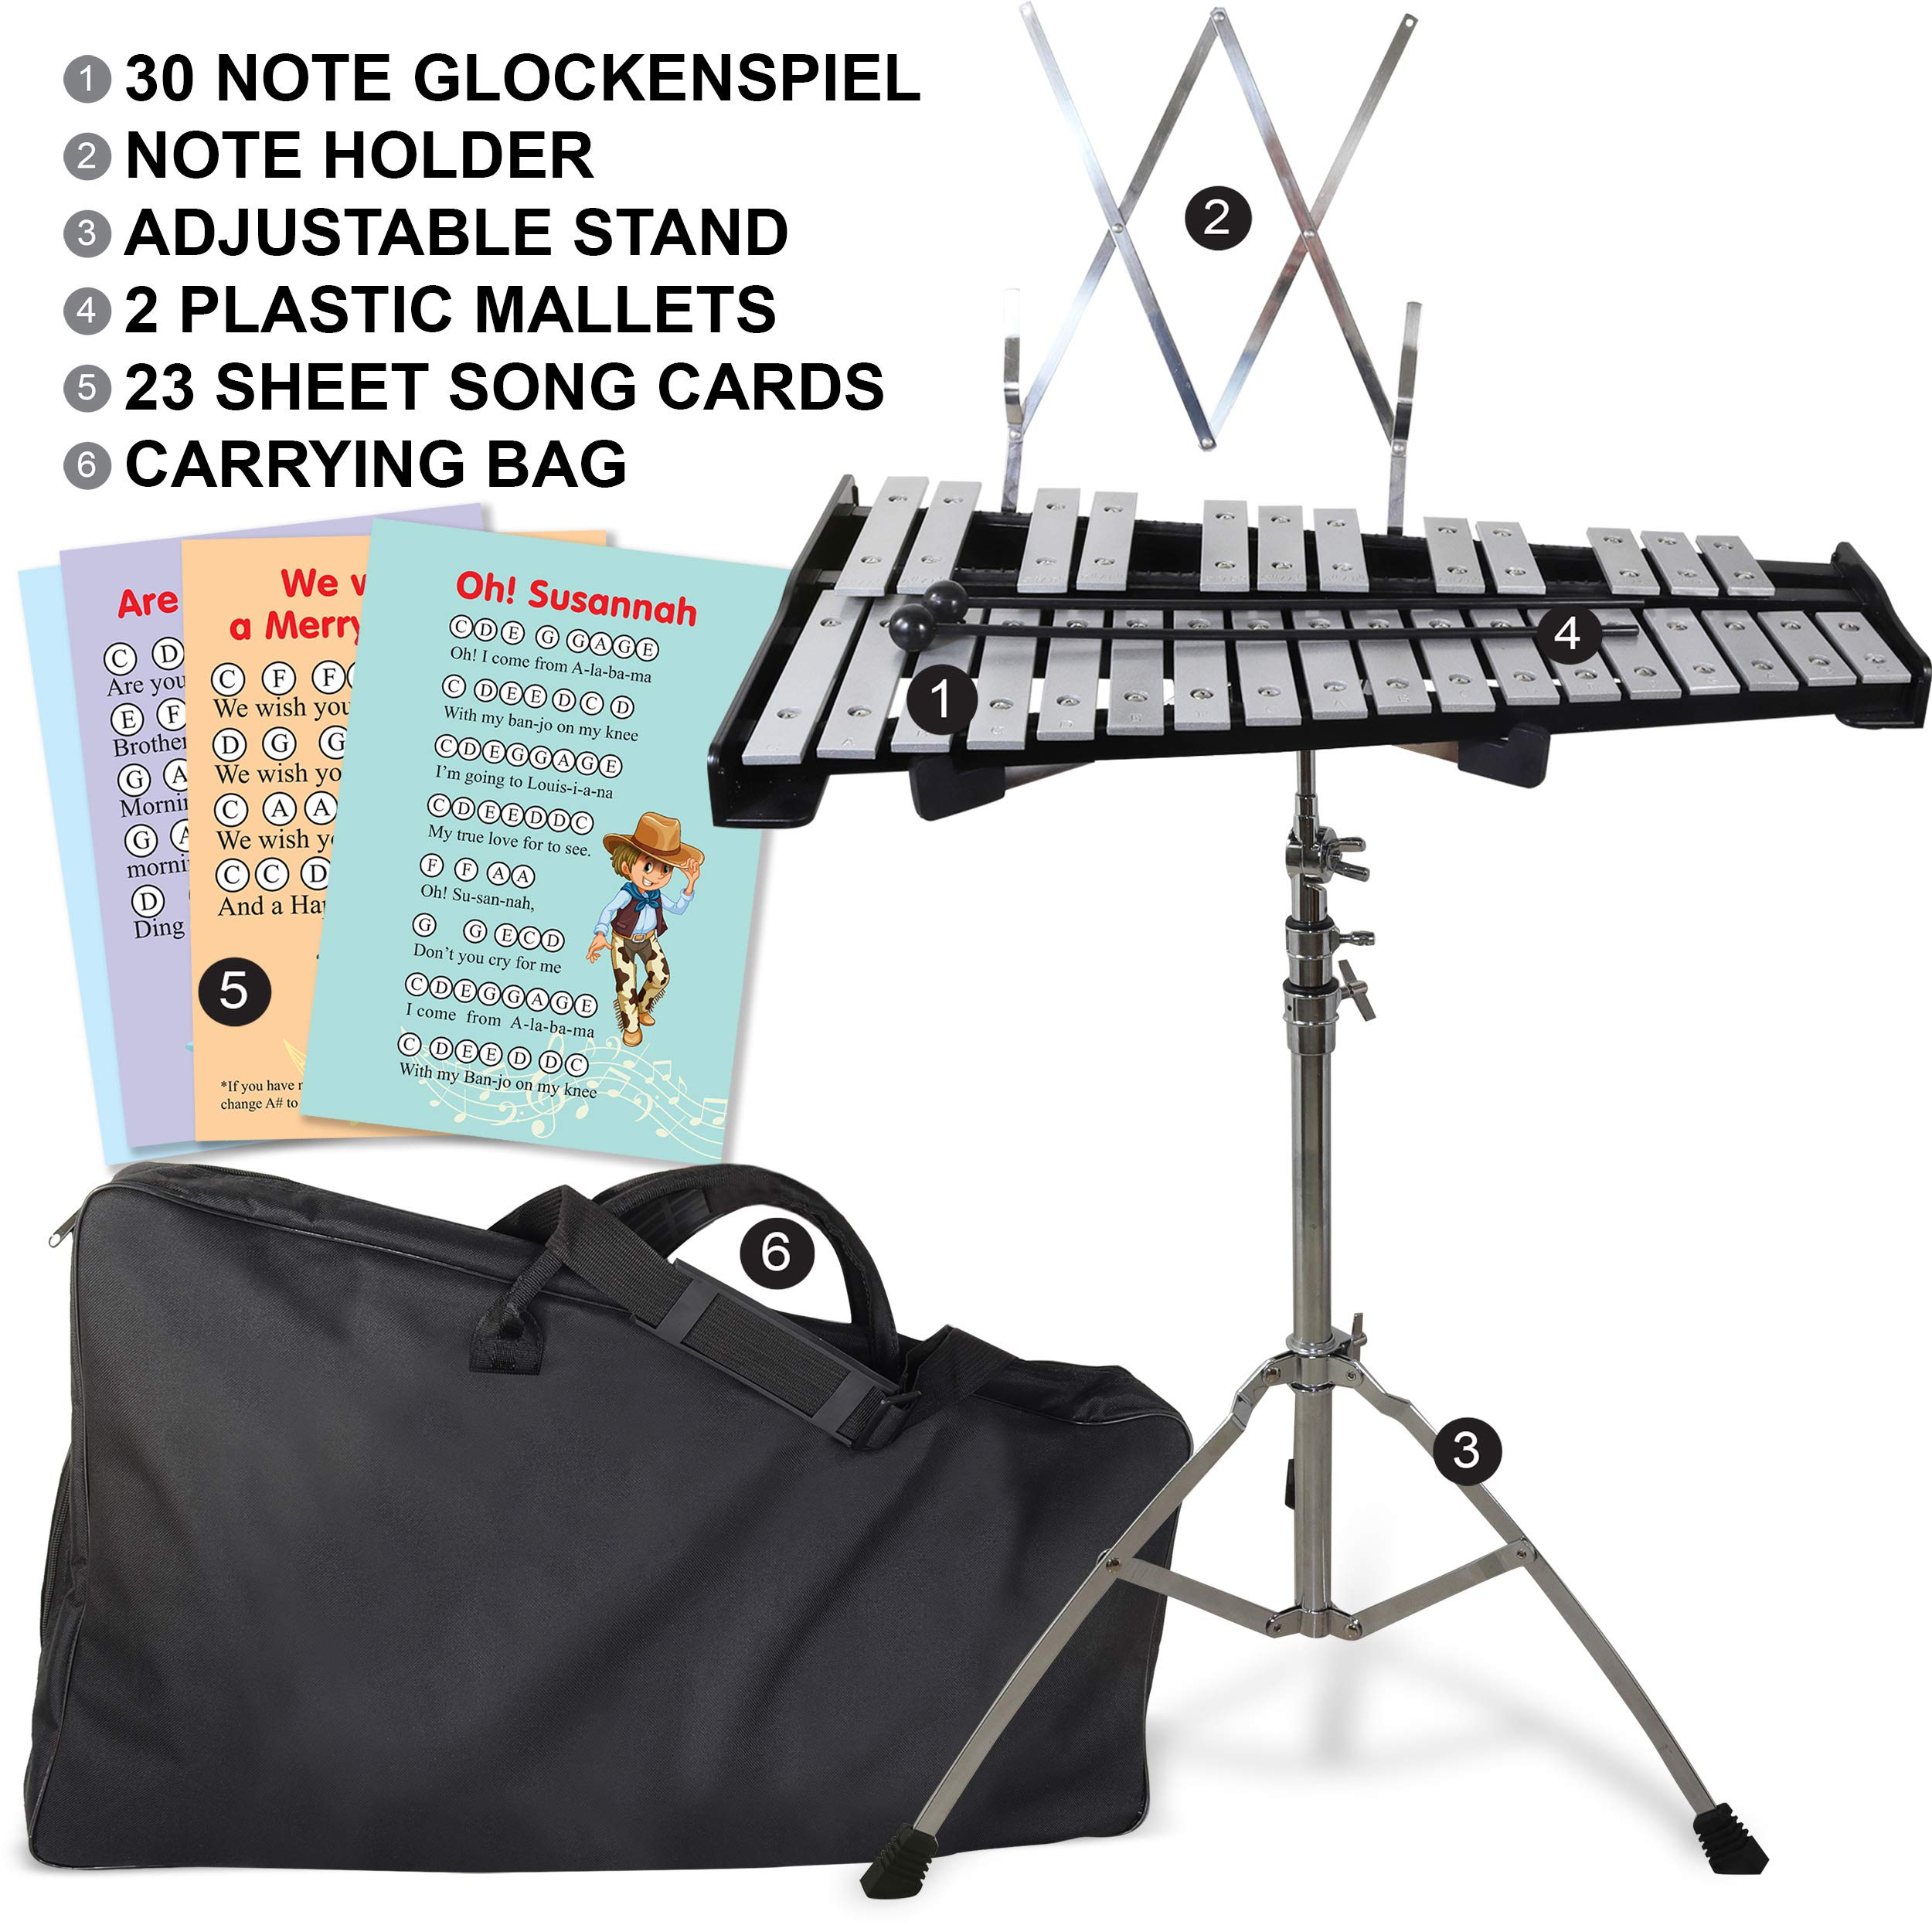 30 note Professional Glockenspiel - Metal Bell Kit Xylophone with Stand, Note Holder and Carrying Bag by inTemenos (Image #7)